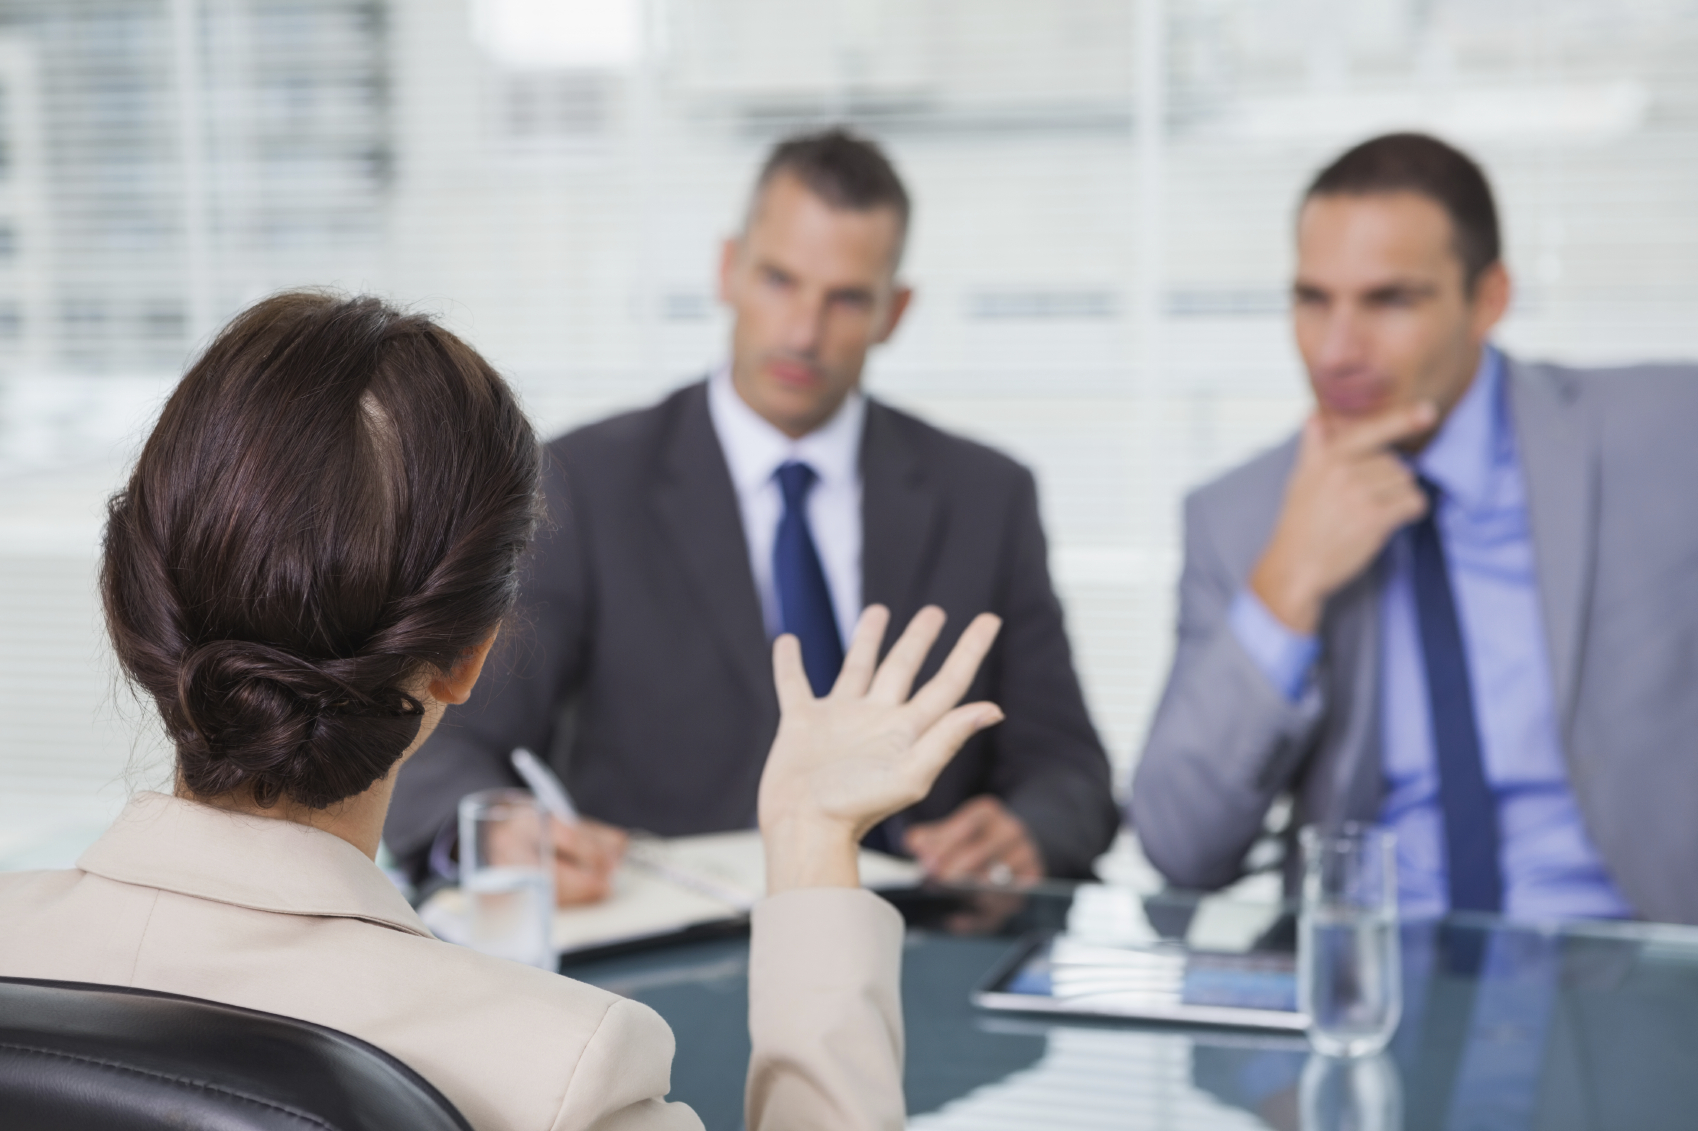 William Almonte - Why Do You Need To Select a Reliable Recruiter While Finding a Job